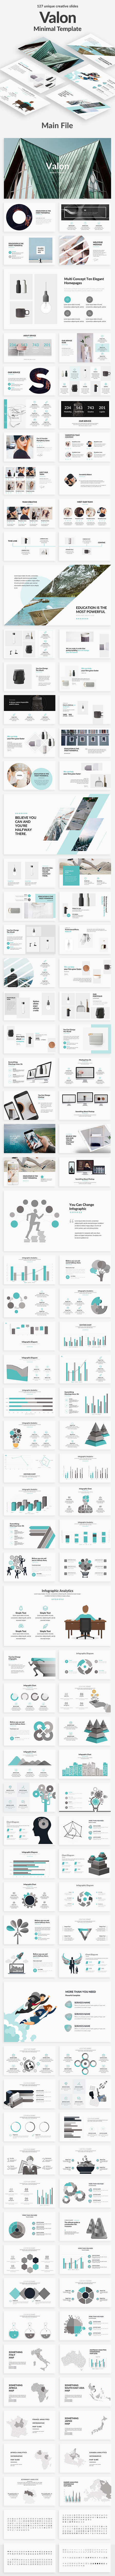 GraphicRiver Valon Minimal Powerpoint Template 20612340